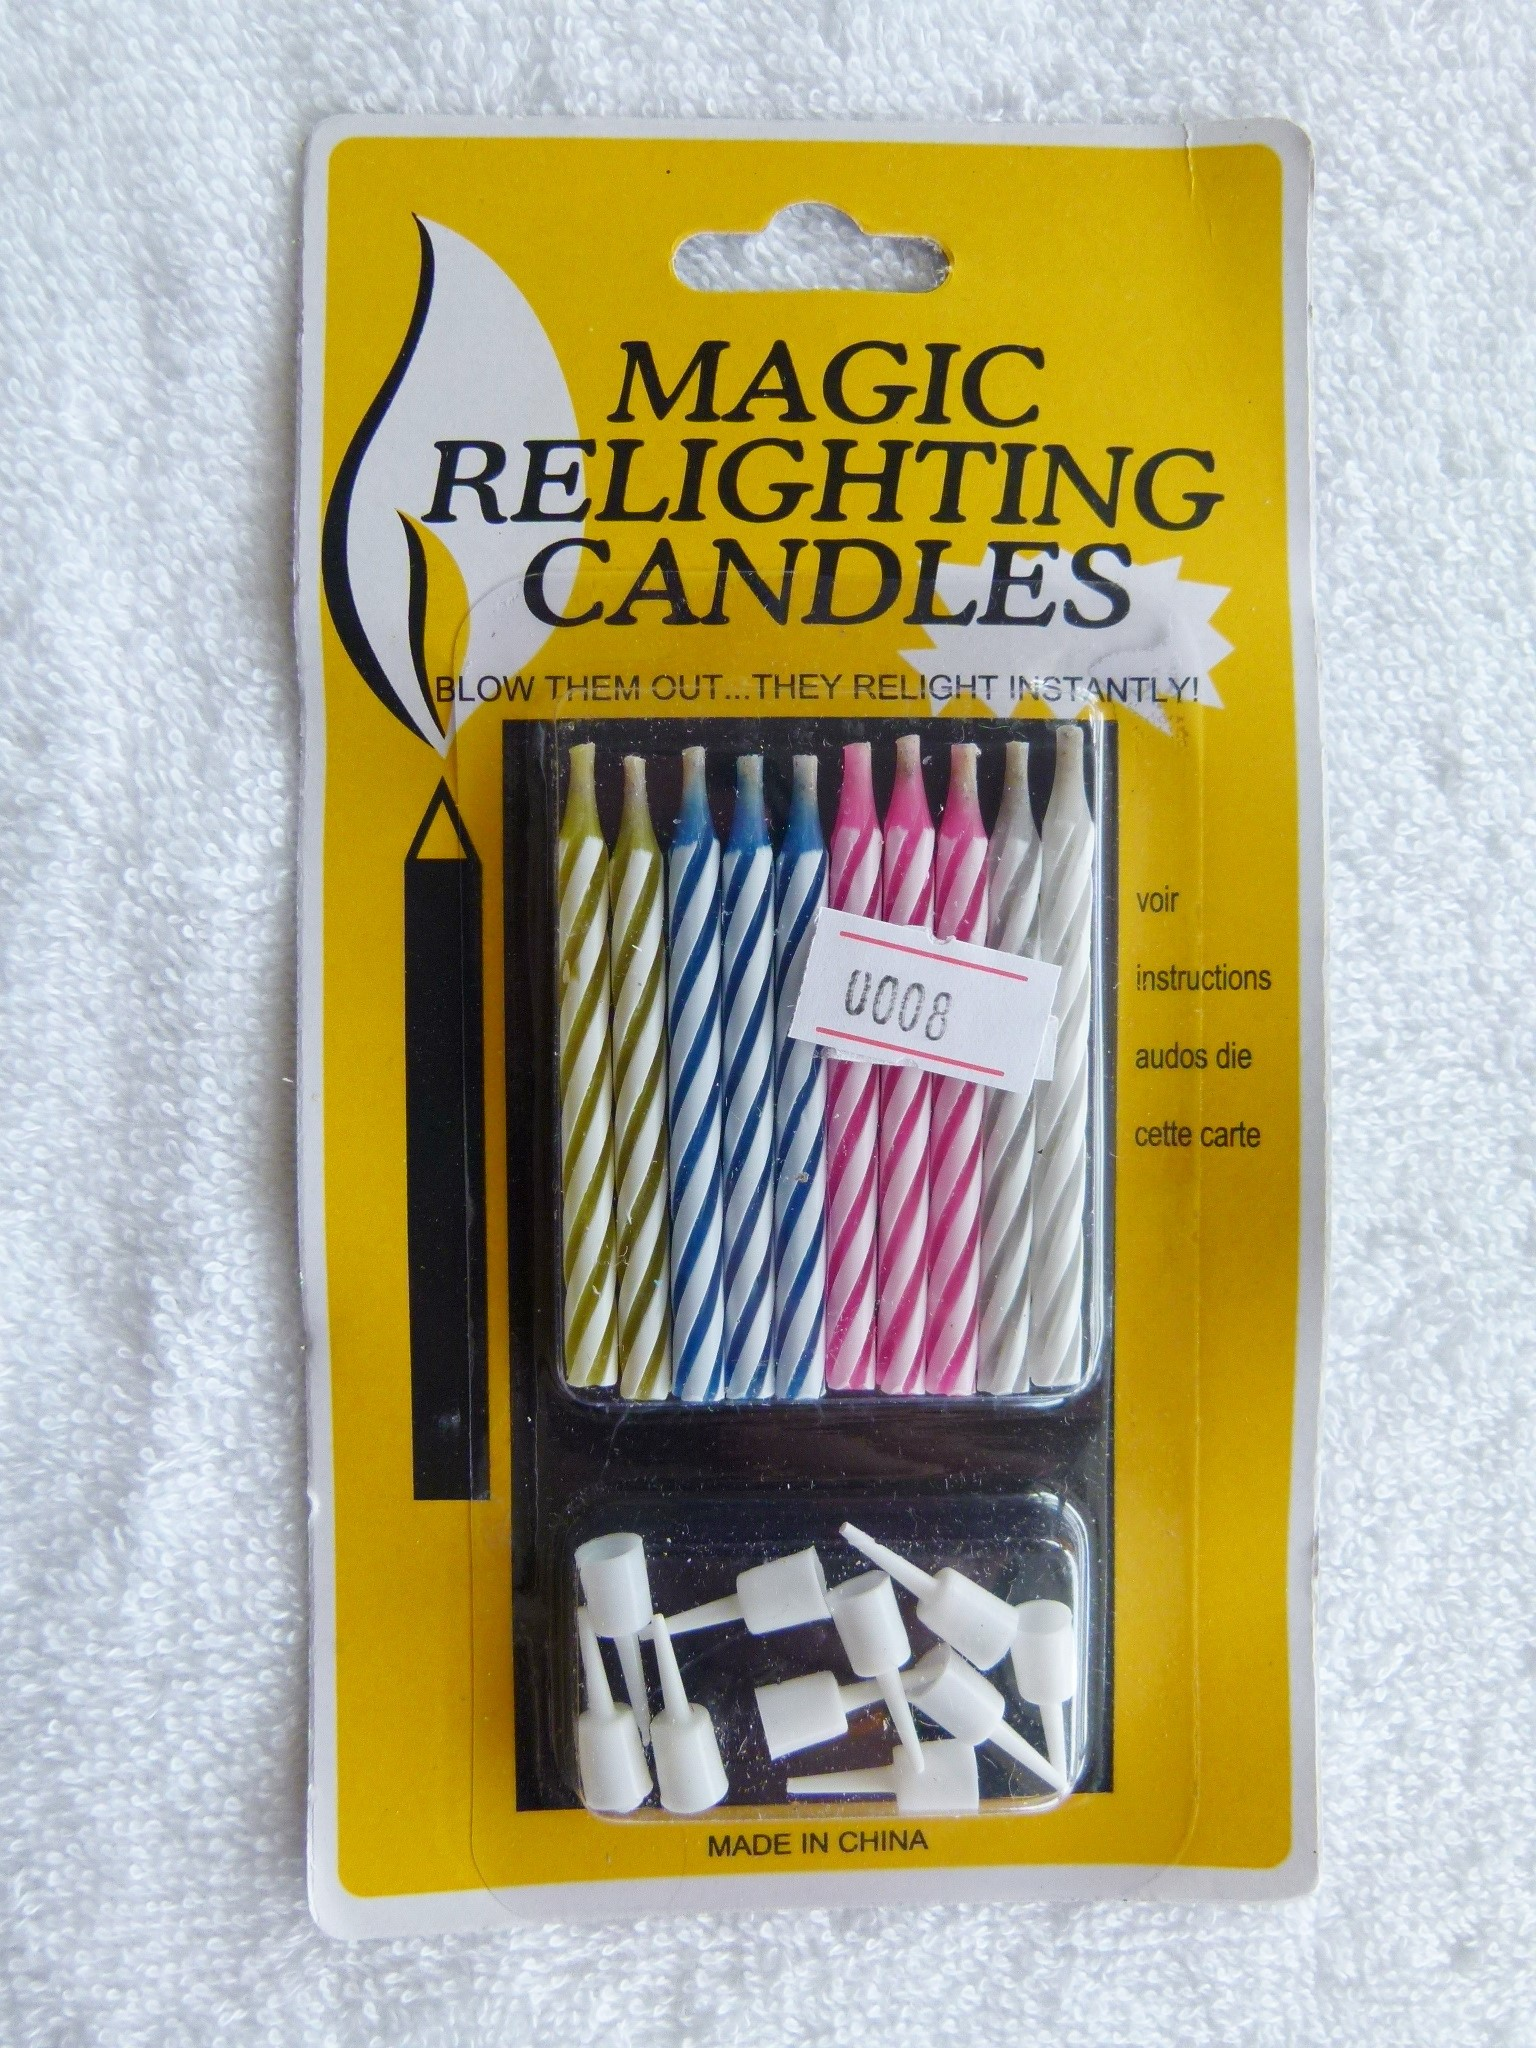 Magic relighting candles # 8 (2)